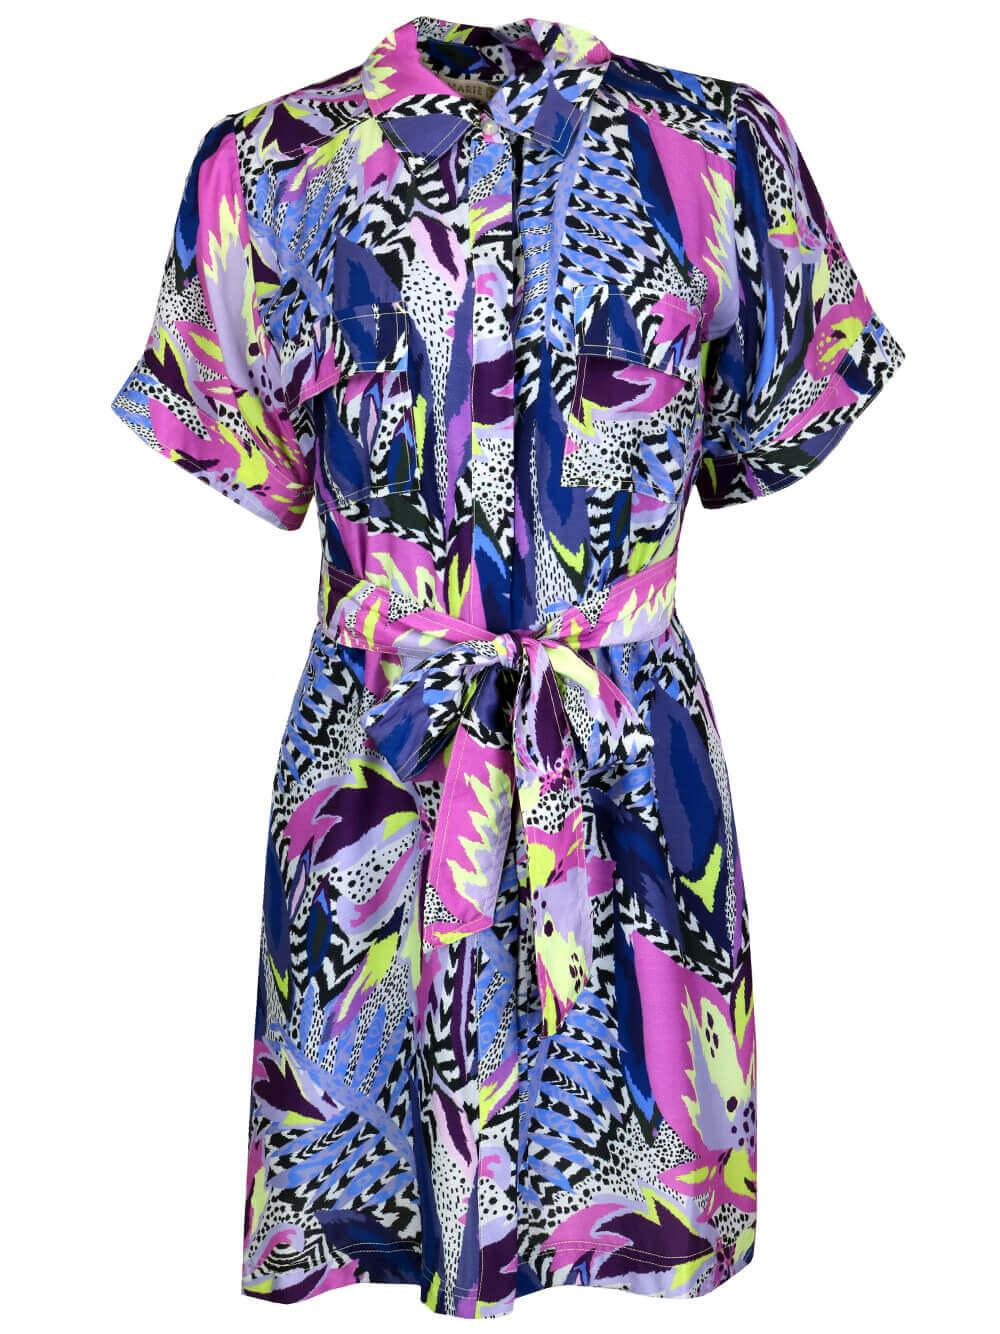 Kali Shirt Dress Item # 2Y5-107-204